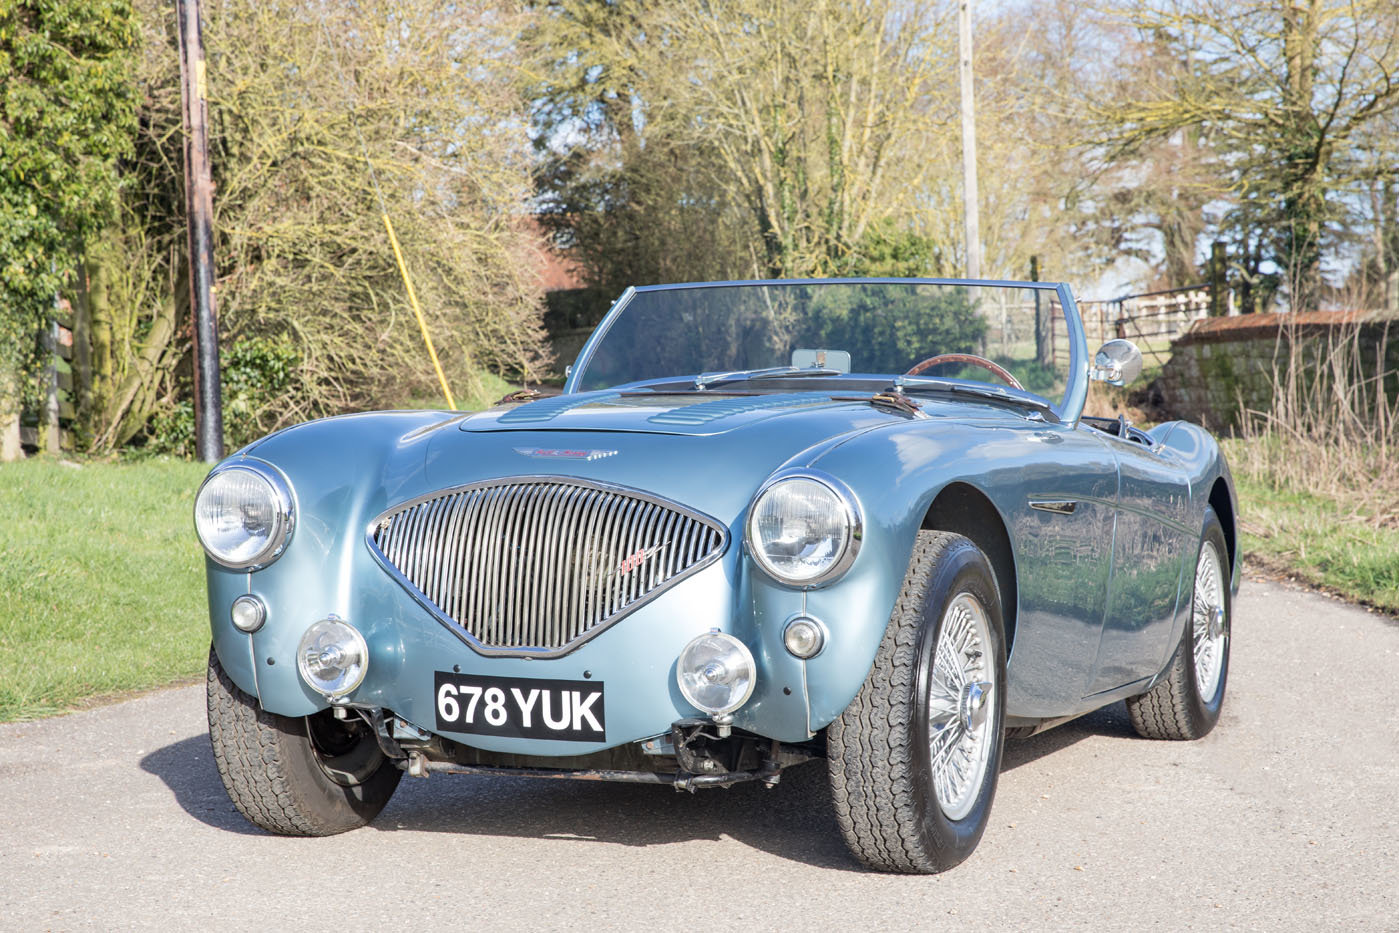 1955 Austin Healey 100/4 BN2 | Healey Blue, M Specification SOLD (picture 3 of 6)